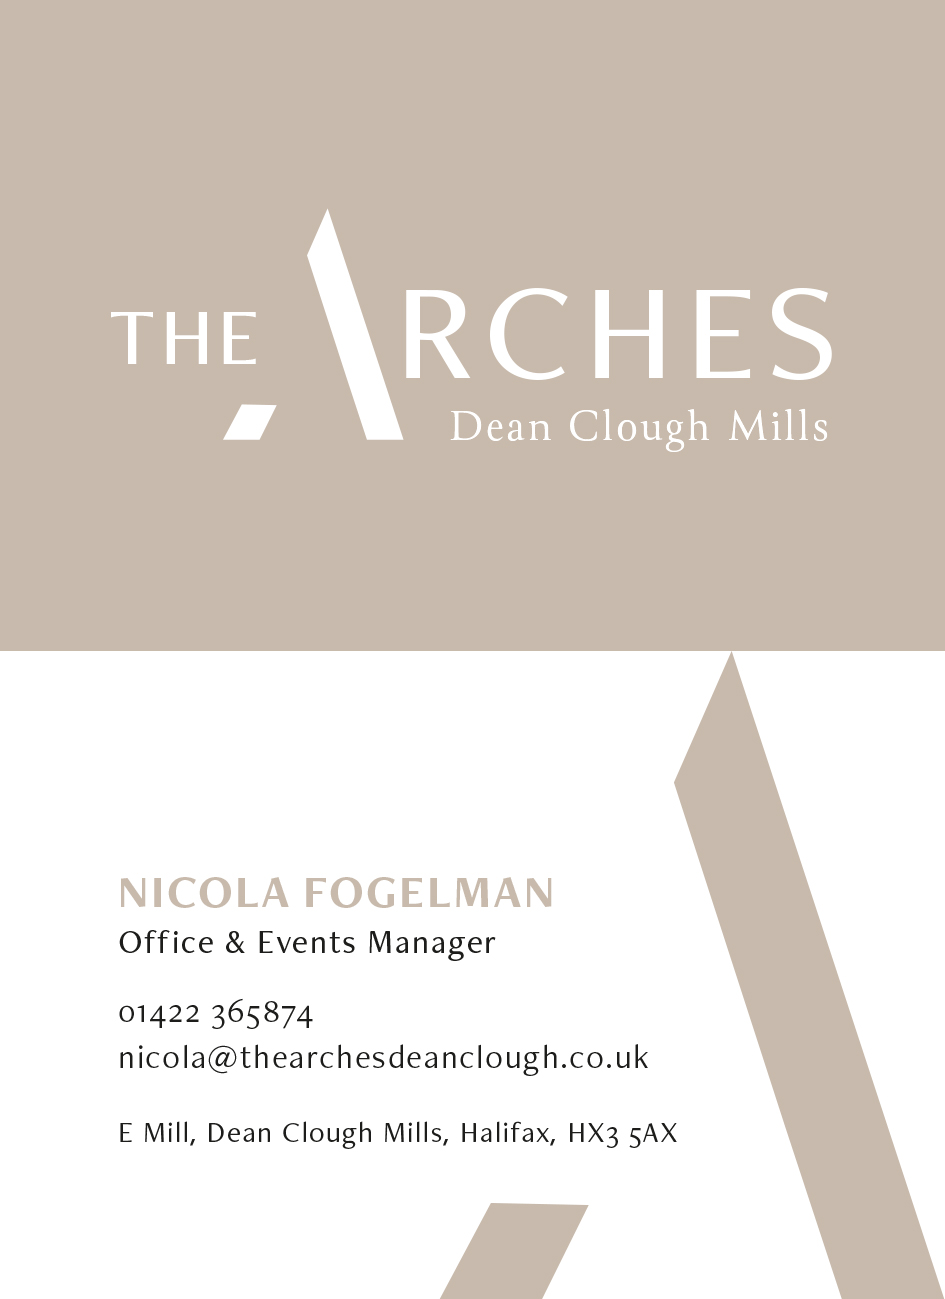 The Arches business cards